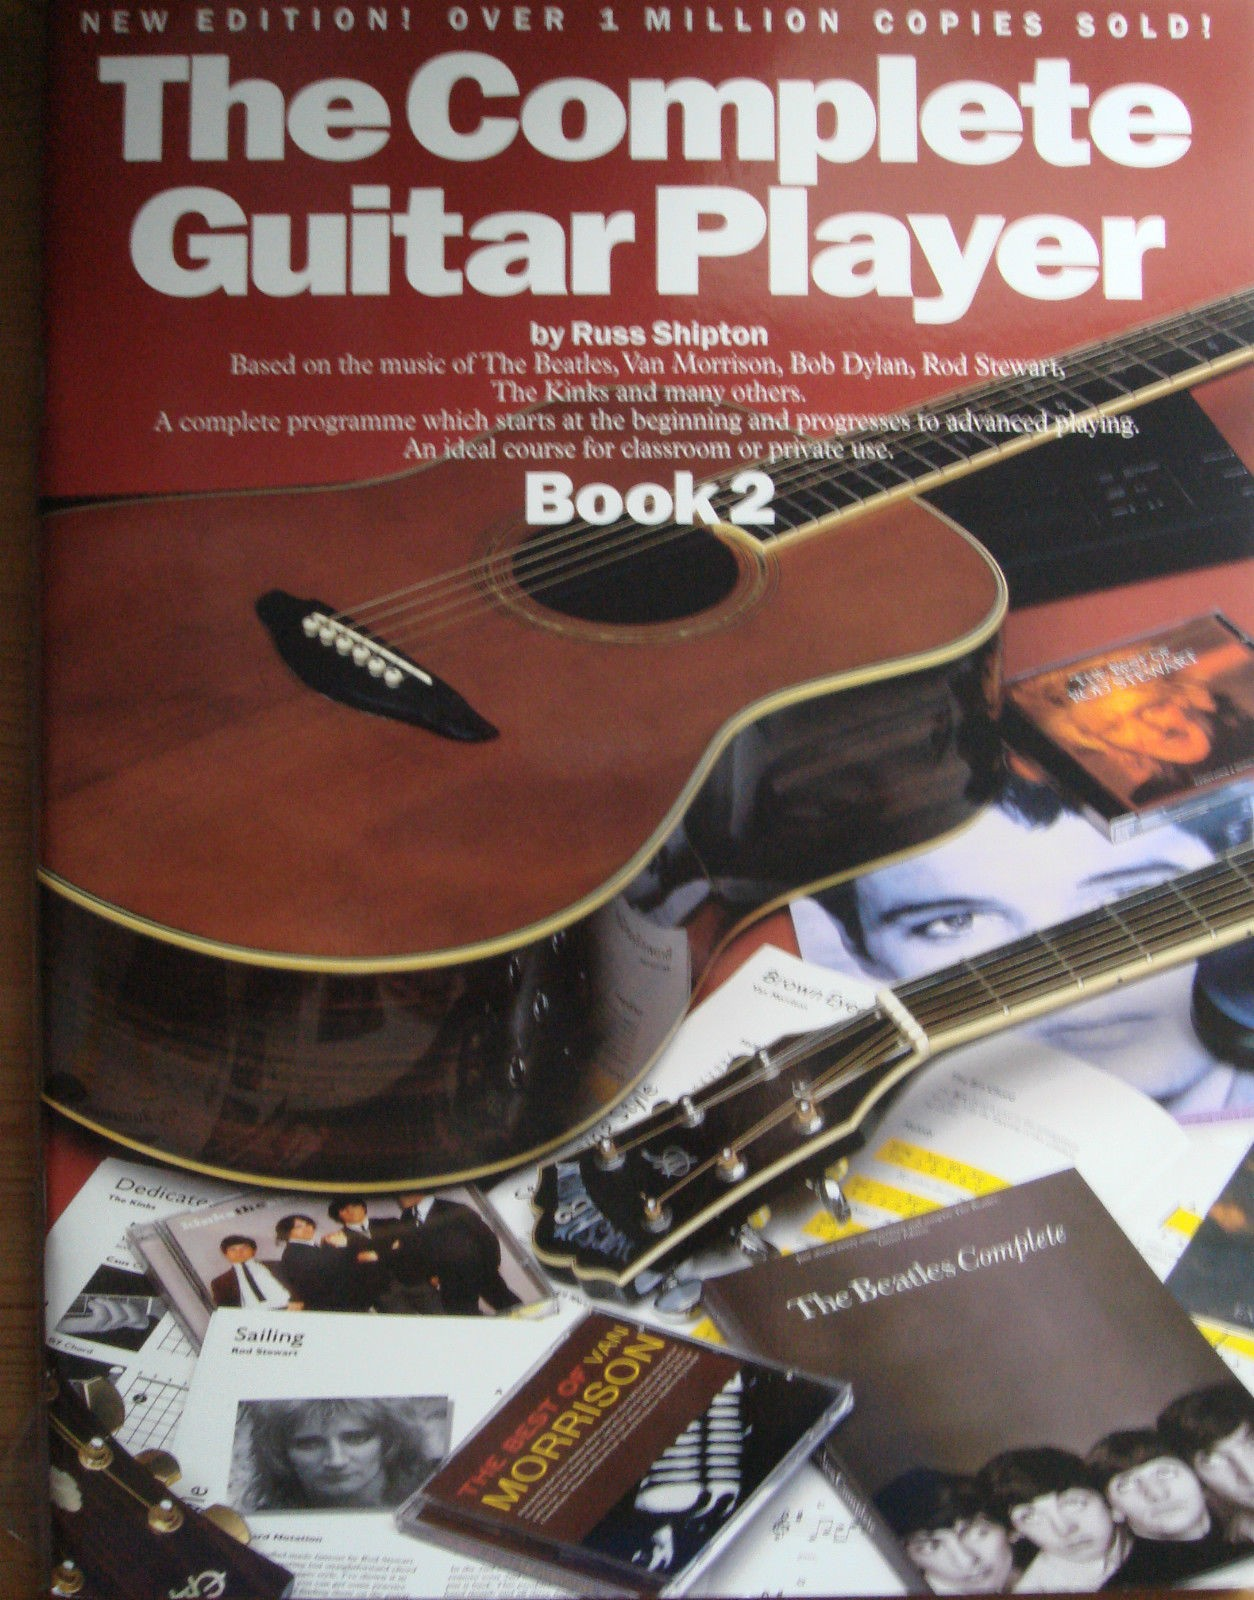 The Complete Guitar Player Book 2 Russ Shipton Acoustic Tutor New Edition B60S98